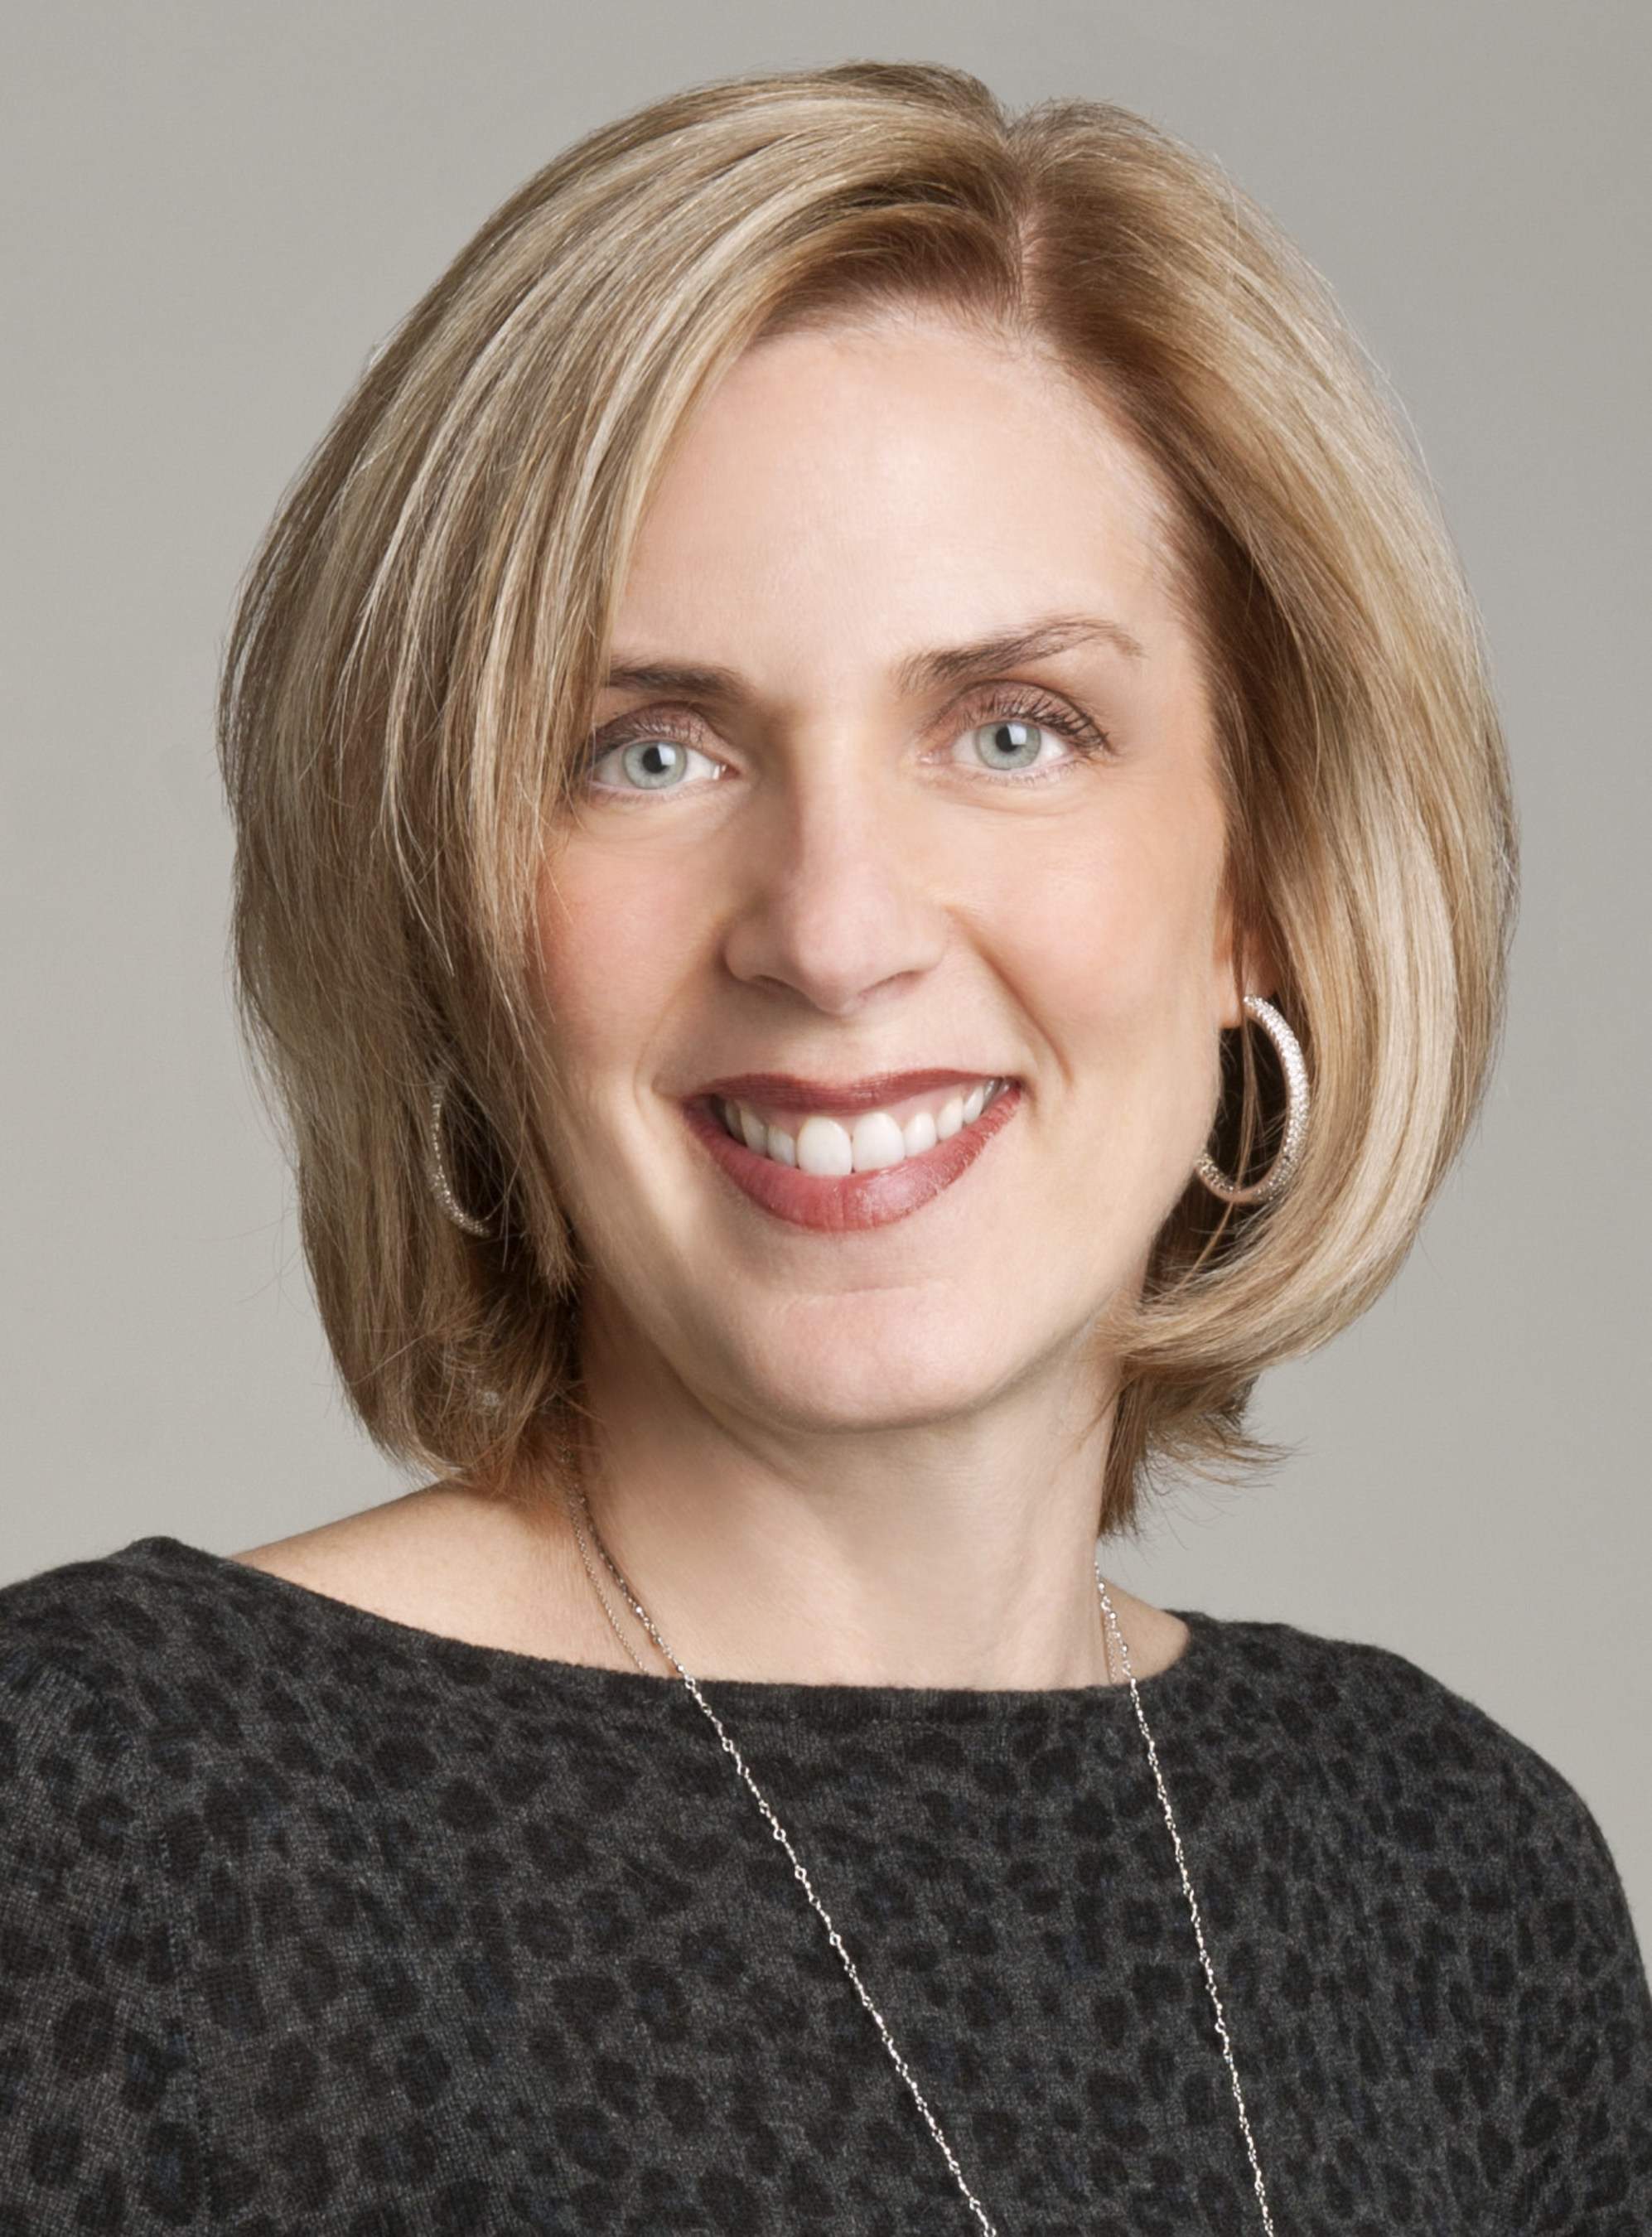 Susan McGalla Gives Advice for Women to Achieve Future Success